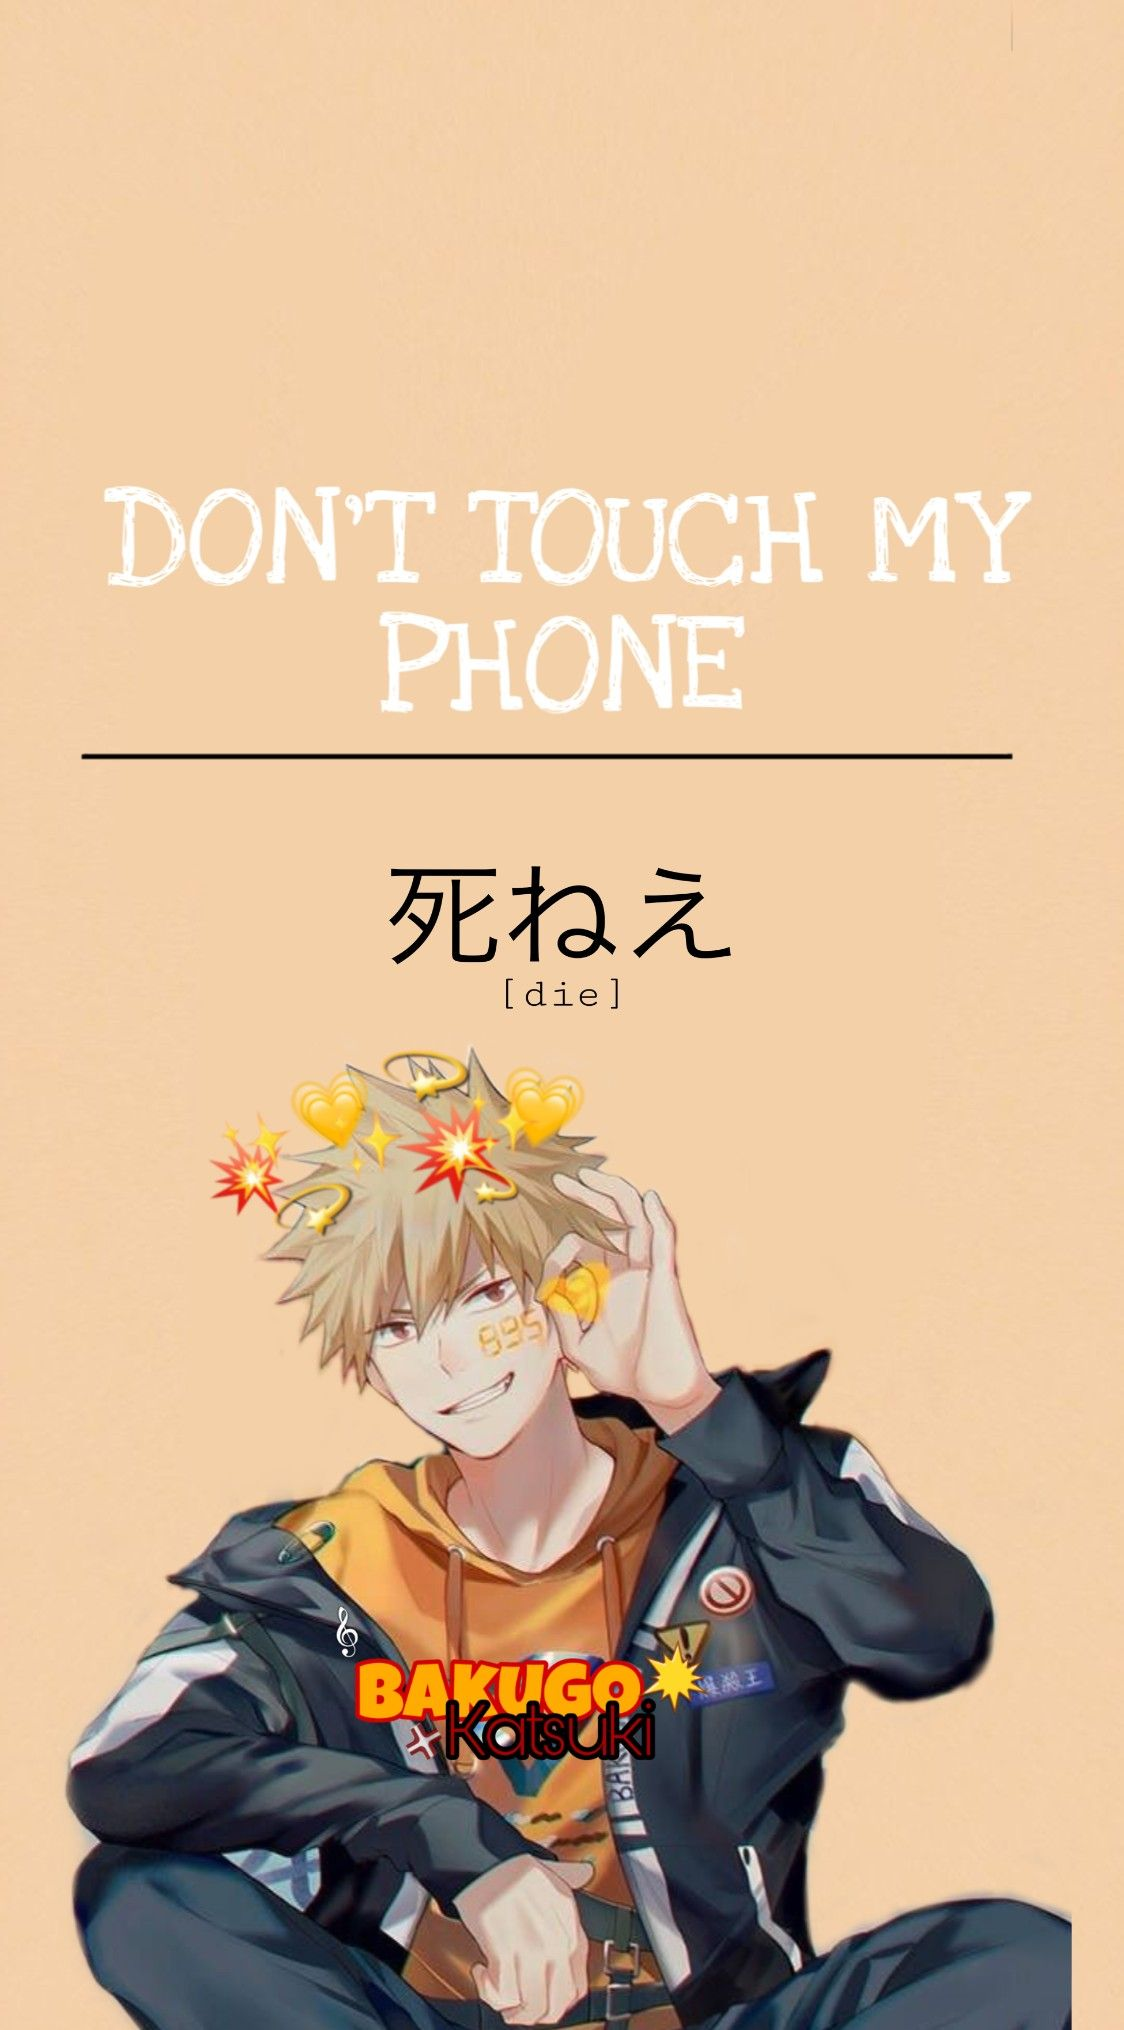 Here are only the best dont touch wallpapers. Bakugou Katsuki wallpaper | Anime wallpaper phone, Cool ...